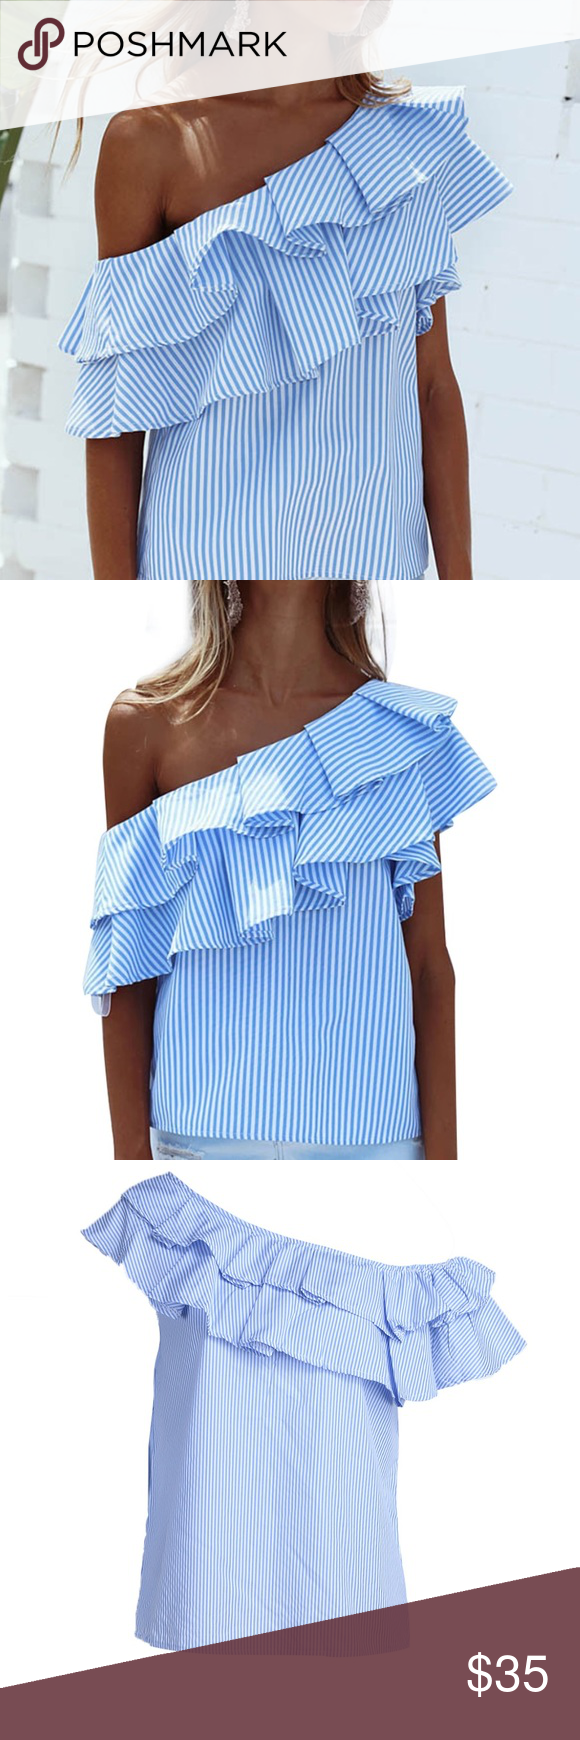 d503f54dbff8de Styling ruffled off the shoulder top blouse Blue and white striped ruffle  top to be